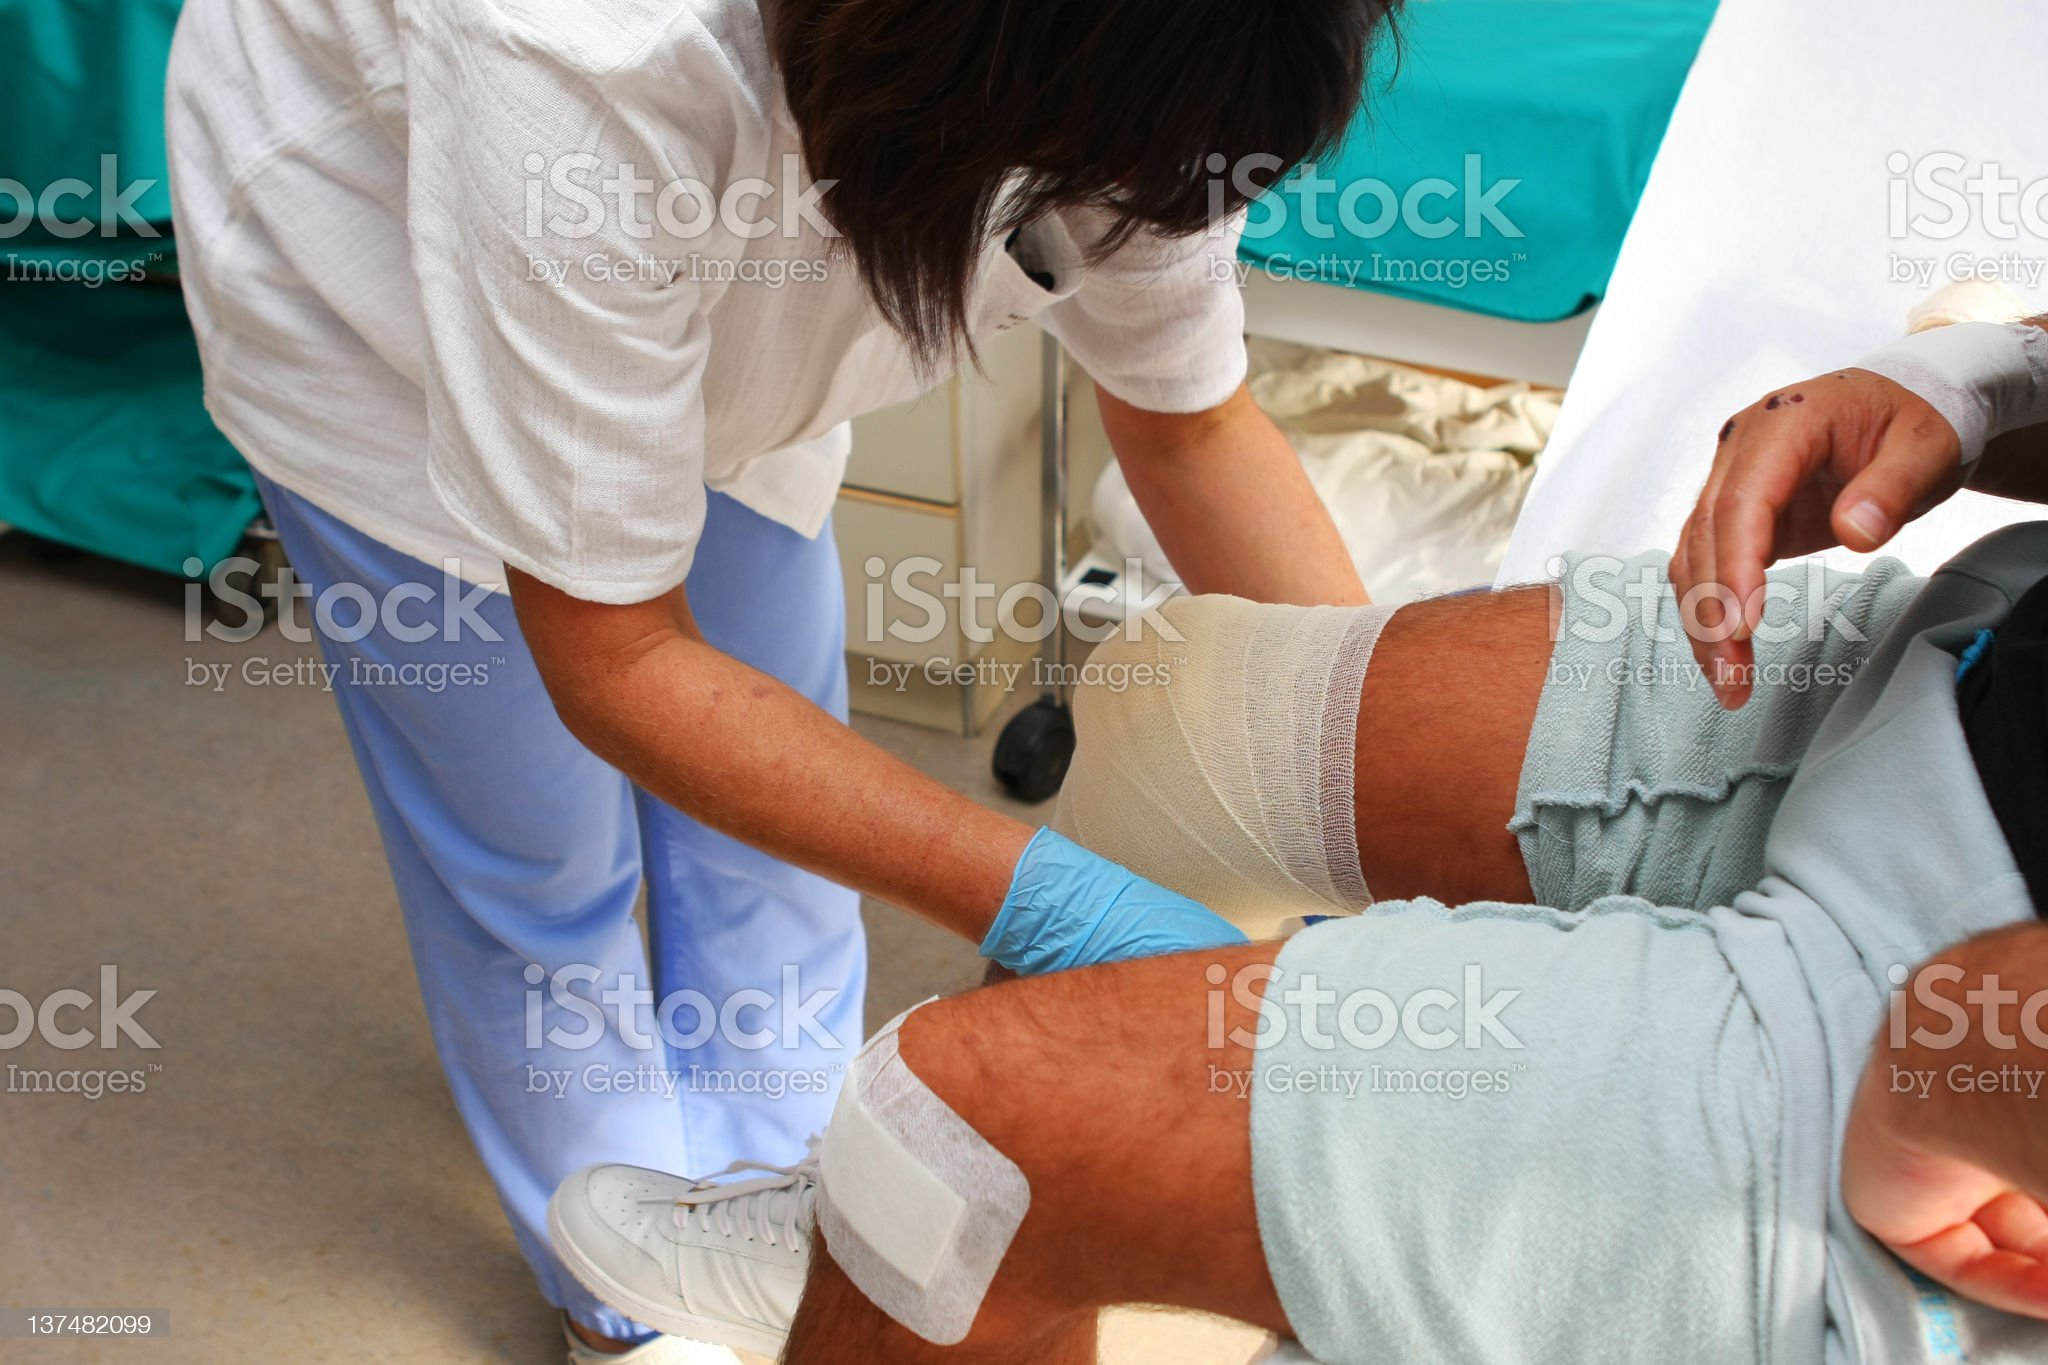 Nurse is taking care of the wounded knee,changing bandage royalty-free stock photo